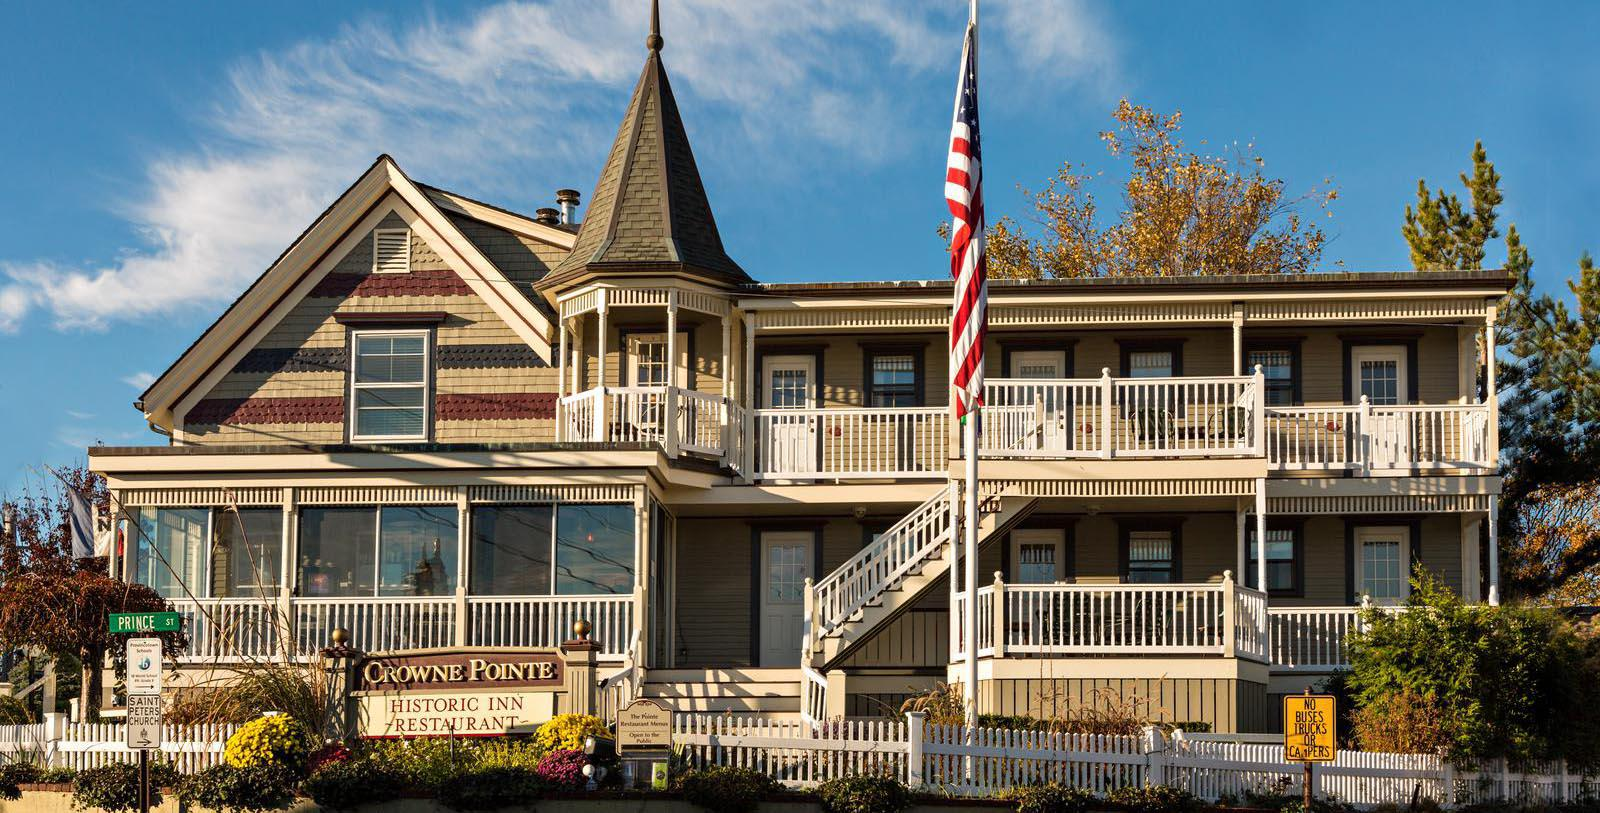 Image of Hotel Exterior at Crowne Pointe Historic Inn, 1900, Member of Historic Hotels of America, in Provincetown, Massachusetts, Special Offers, Discounted Rates, Families, Romantic Escape, Honeymoons, Anniversaries, Reunions